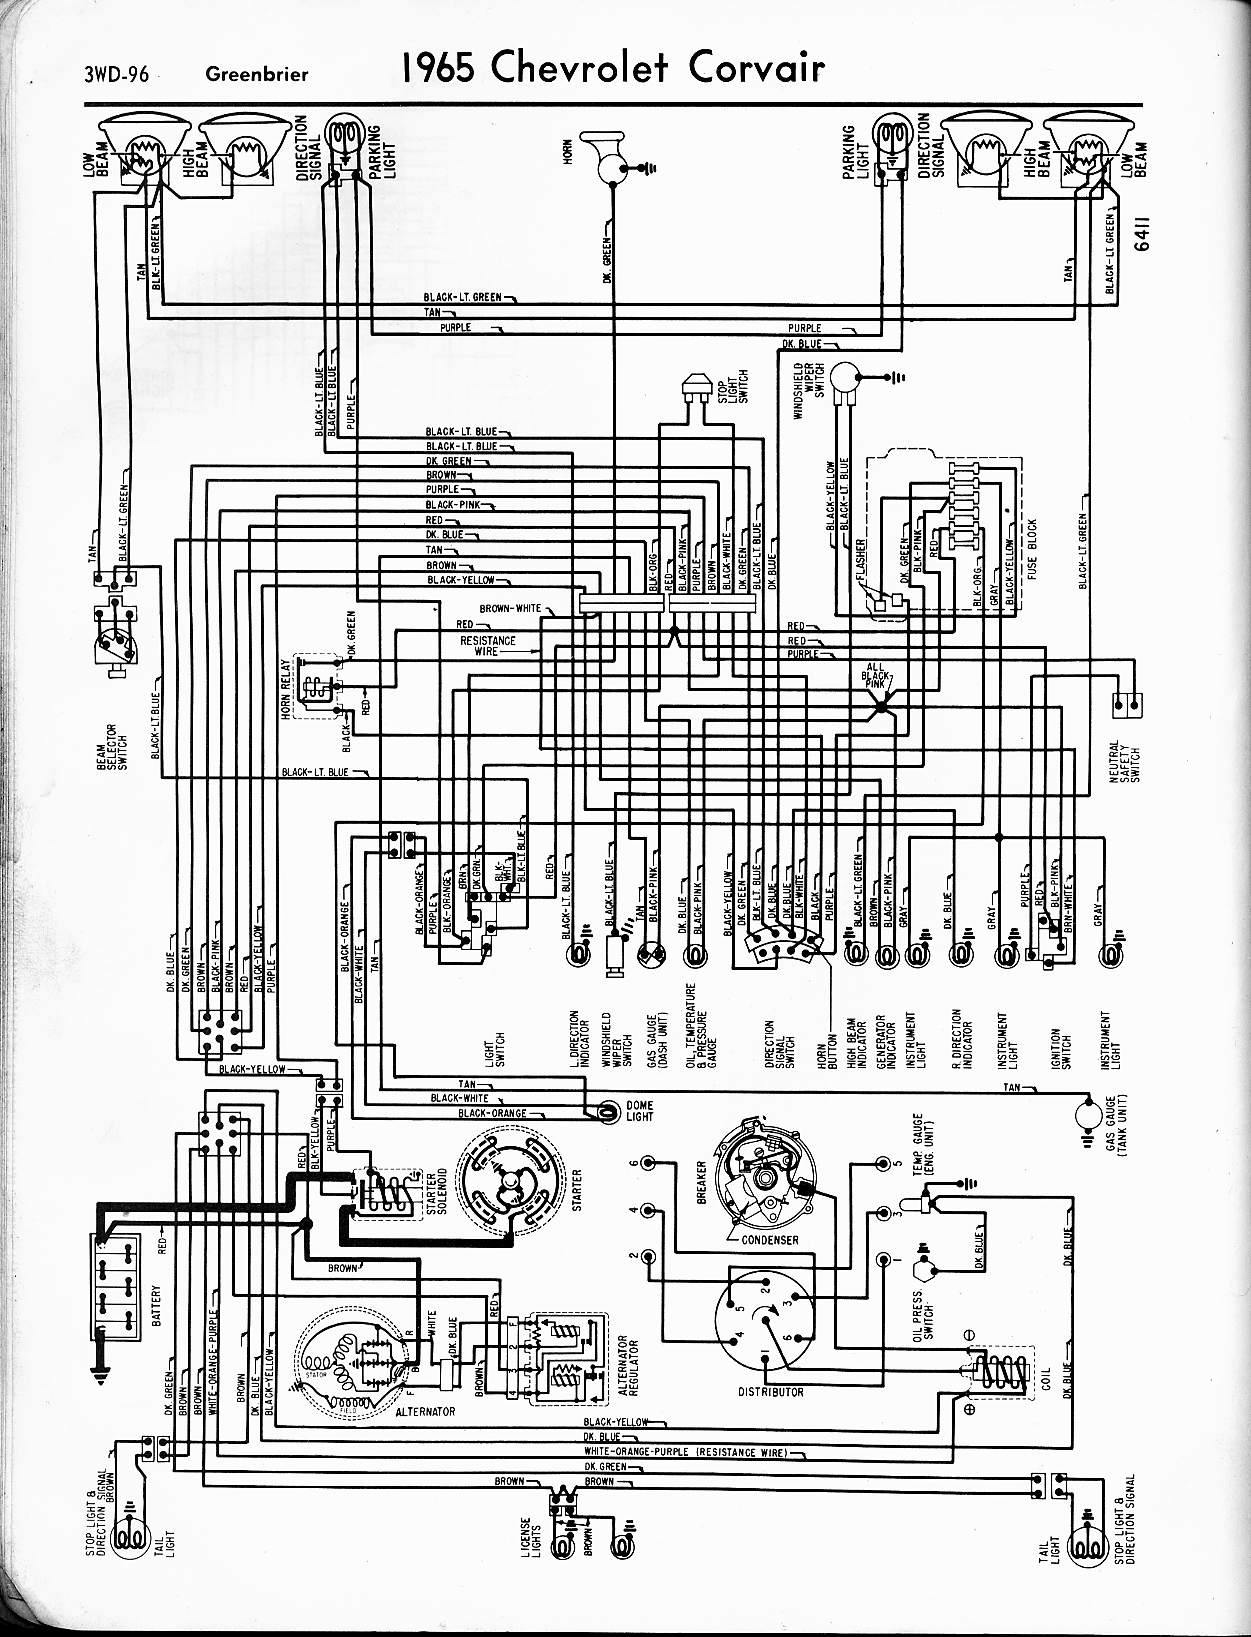 Hercules Foot Switch Wiring Diagram in addition 1955 Chevy Bel Air Wiring Diagram Wiring Diagrams further Flathead drawings electrical likewise 1950 Ford Wiring Harness further Diagram view. on 1950 ford headlight switch wiring diagram